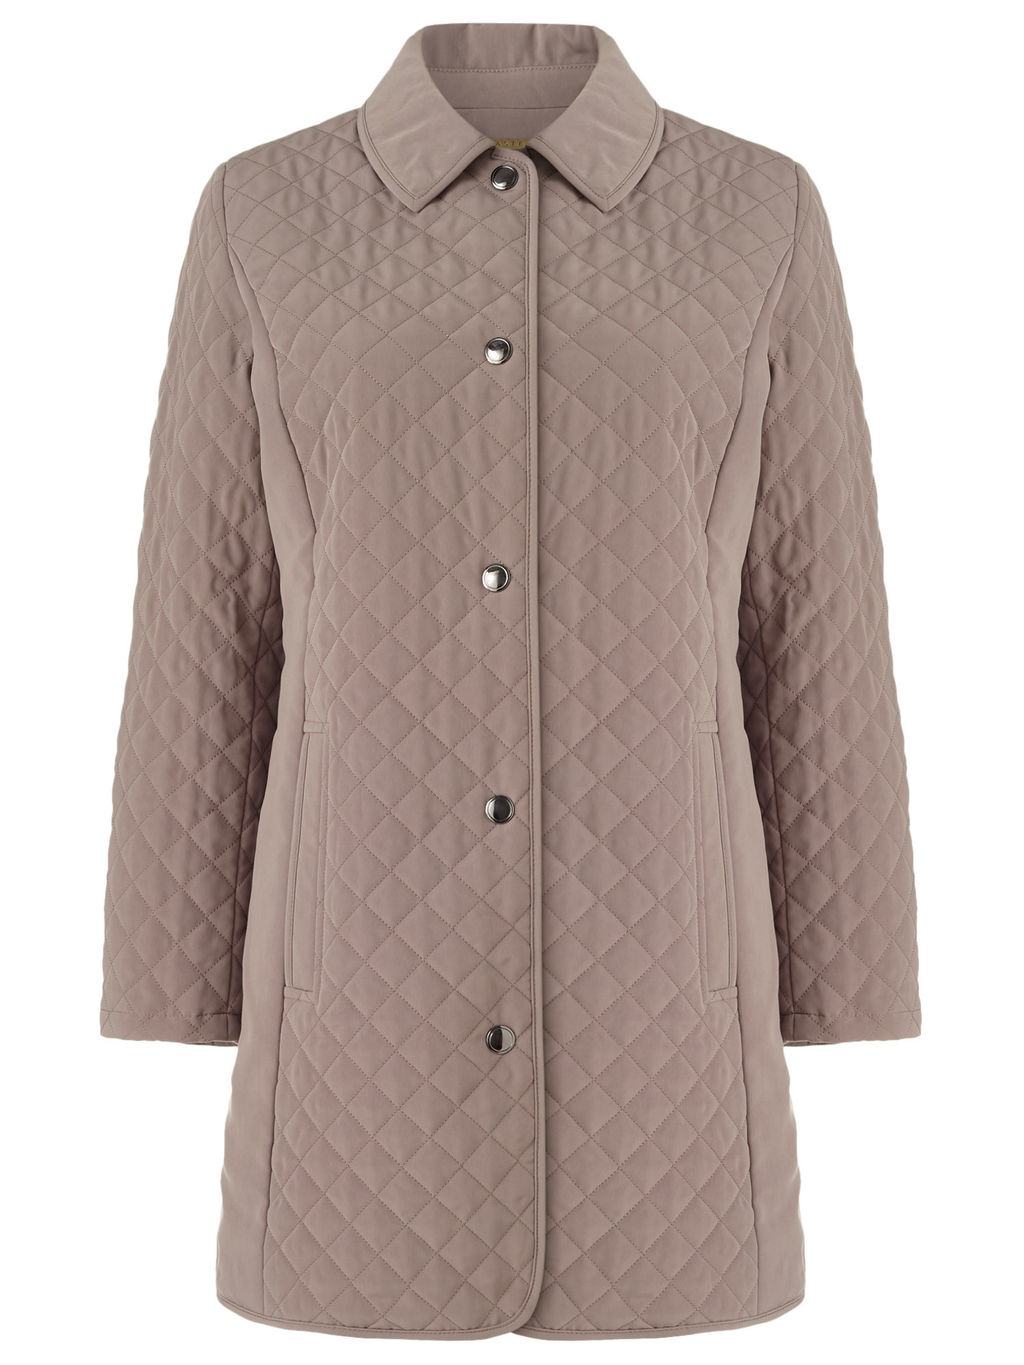 Longline Quilted Raincoat - pattern: plain; length: below the bottom; style: quilted; predominant colour: taupe; occasions: casual; fit: straight cut (boxy); fibres: polyester/polyamide - 100%; collar: shirt collar/peter pan/zip with opening; sleeve length: long sleeve; sleeve style: standard; collar break: high; pattern type: fabric; texture group: other - bulky/heavy; embellishment: quilted; season: s/s 2016; wardrobe: highlight